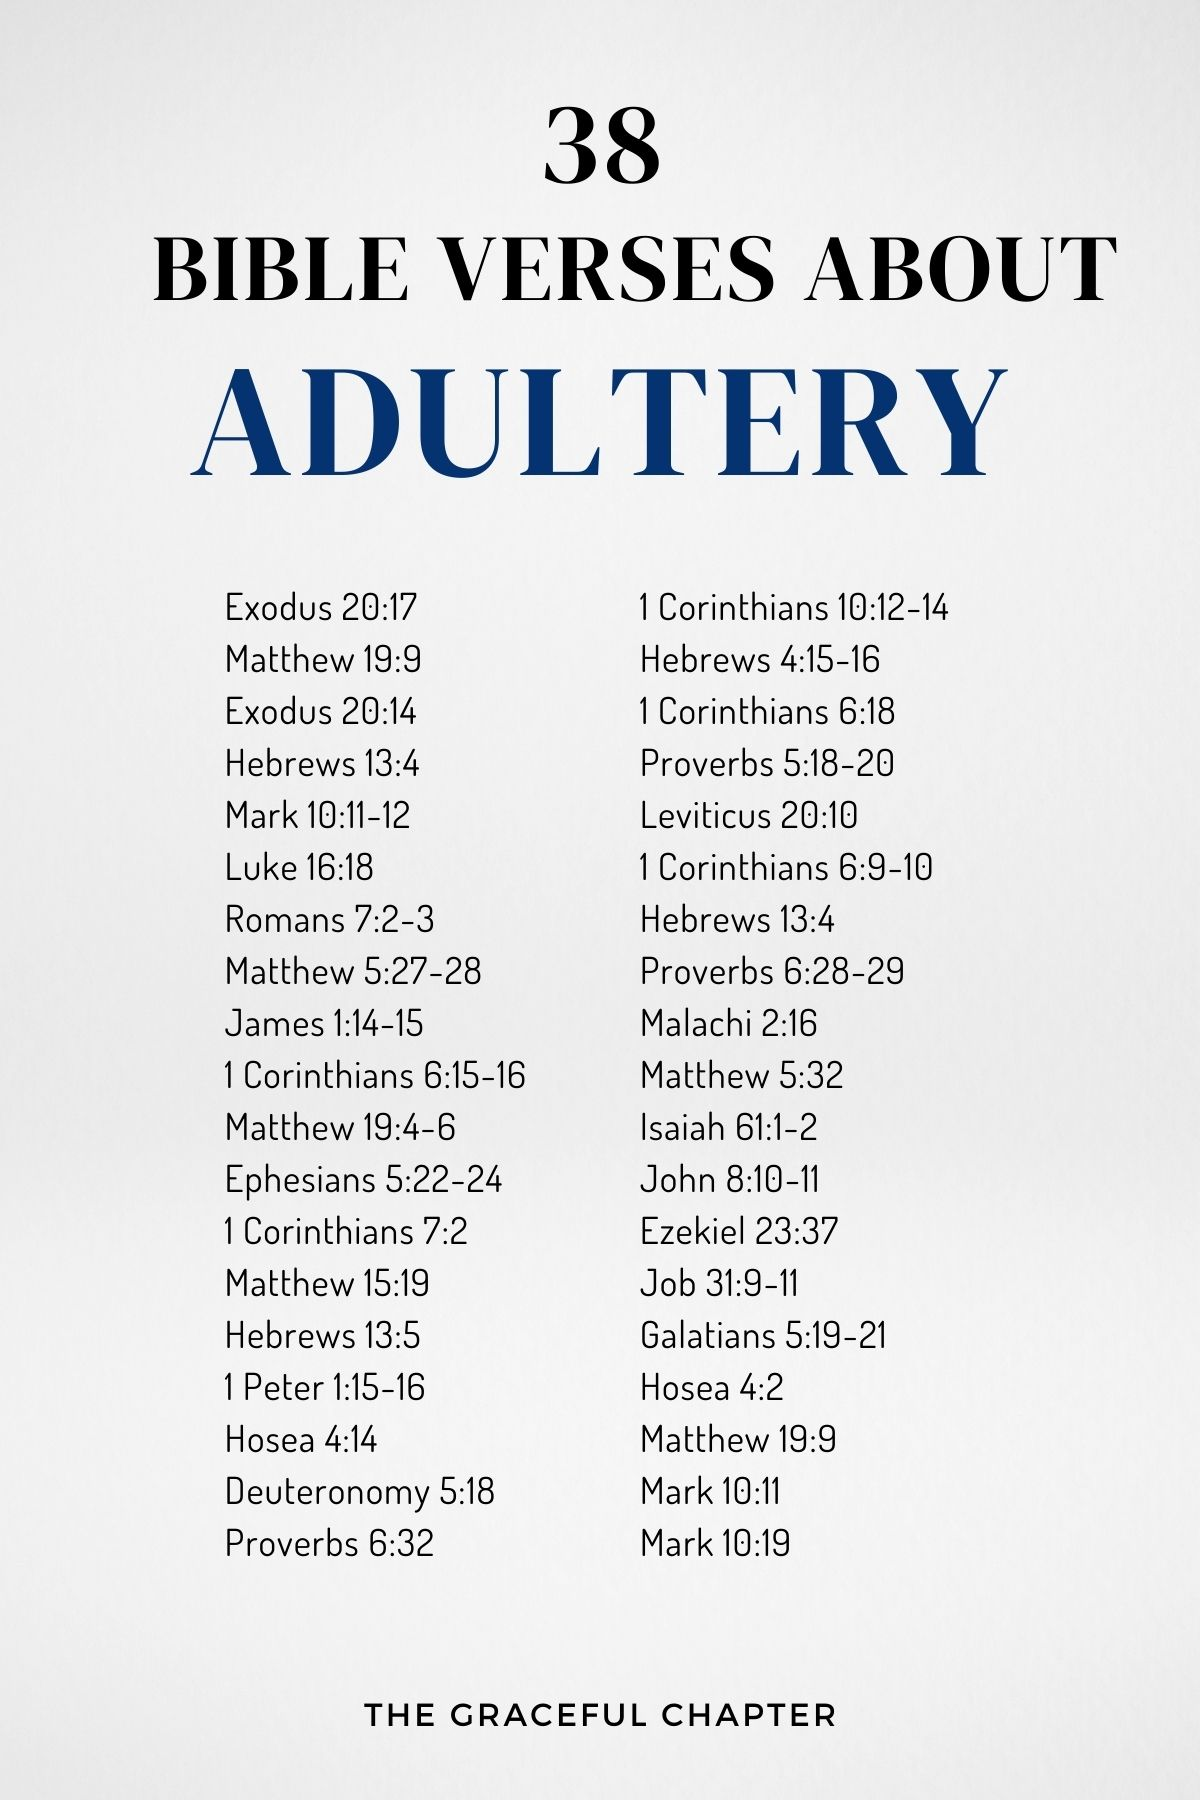 bible verses about adultery